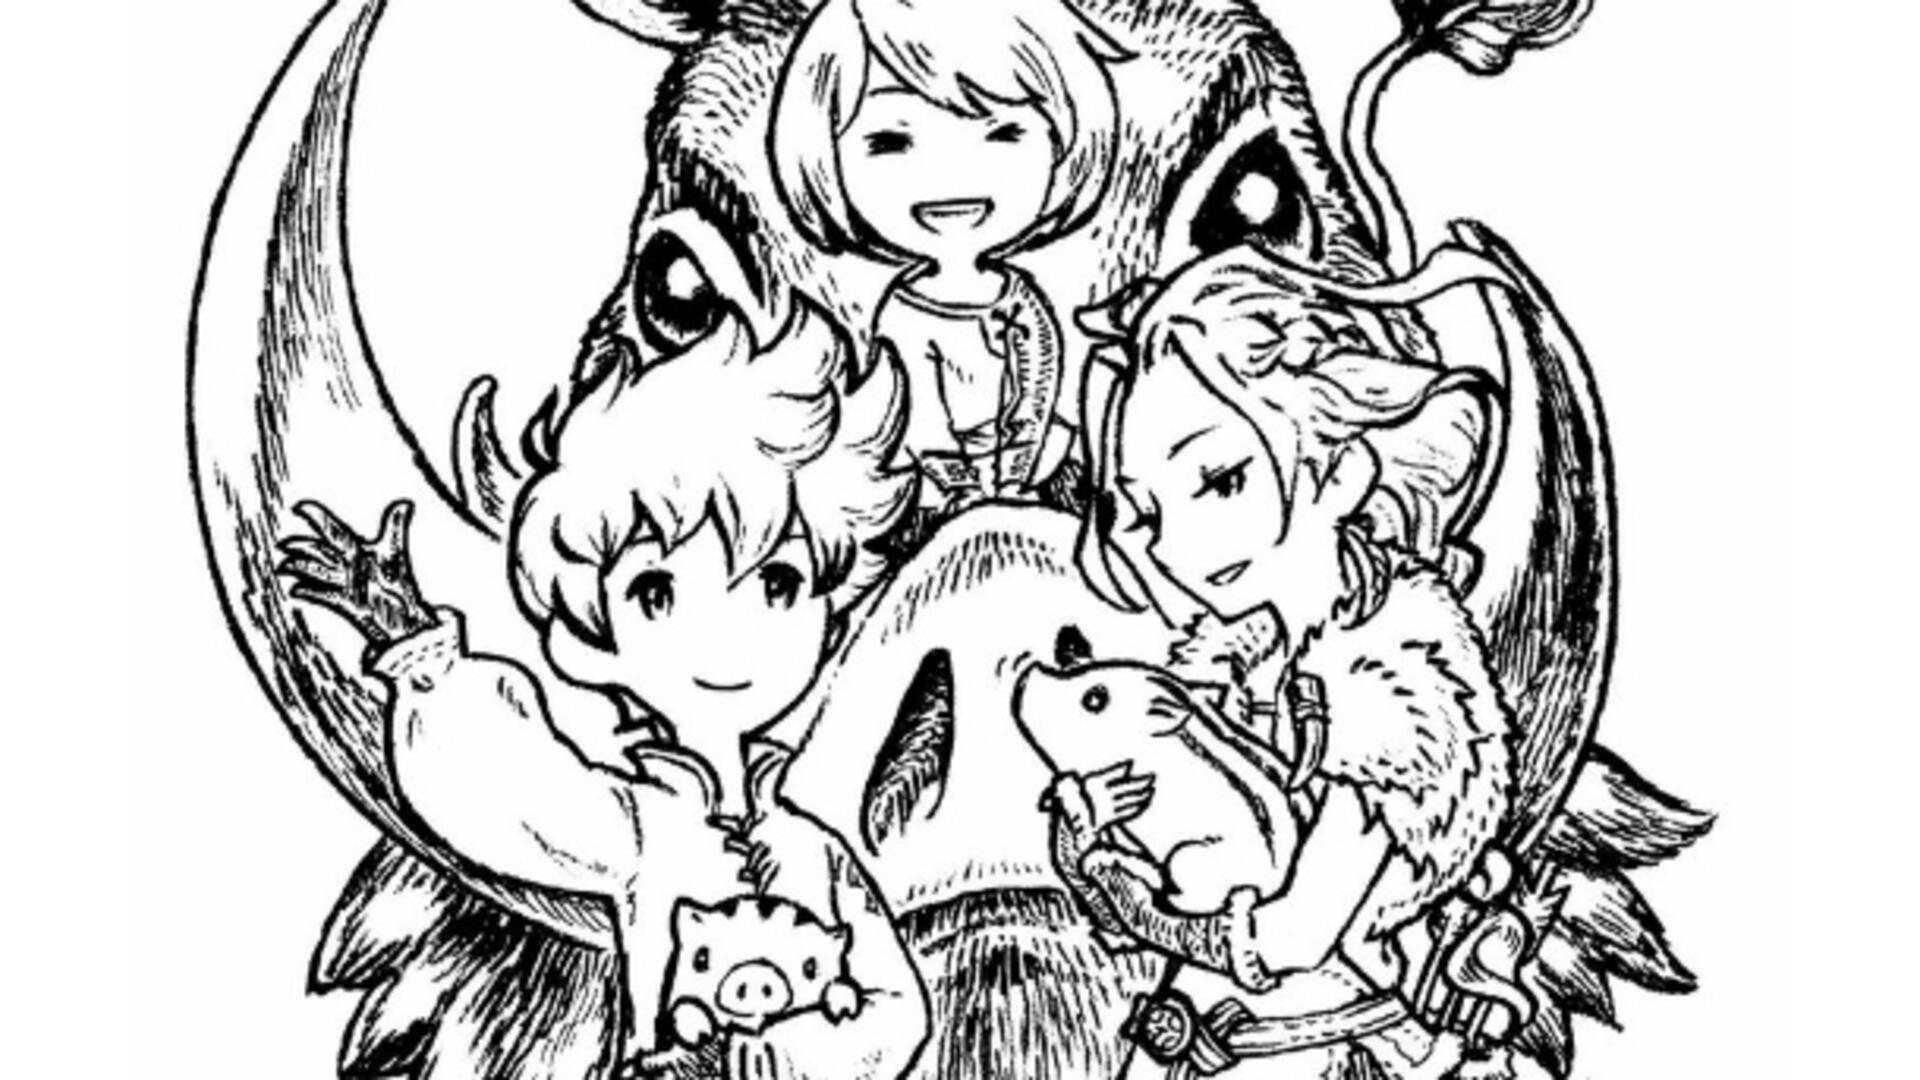 Bravely Default Twitter Account Excites Fans by Posting Teaser Featuring Octopath Character